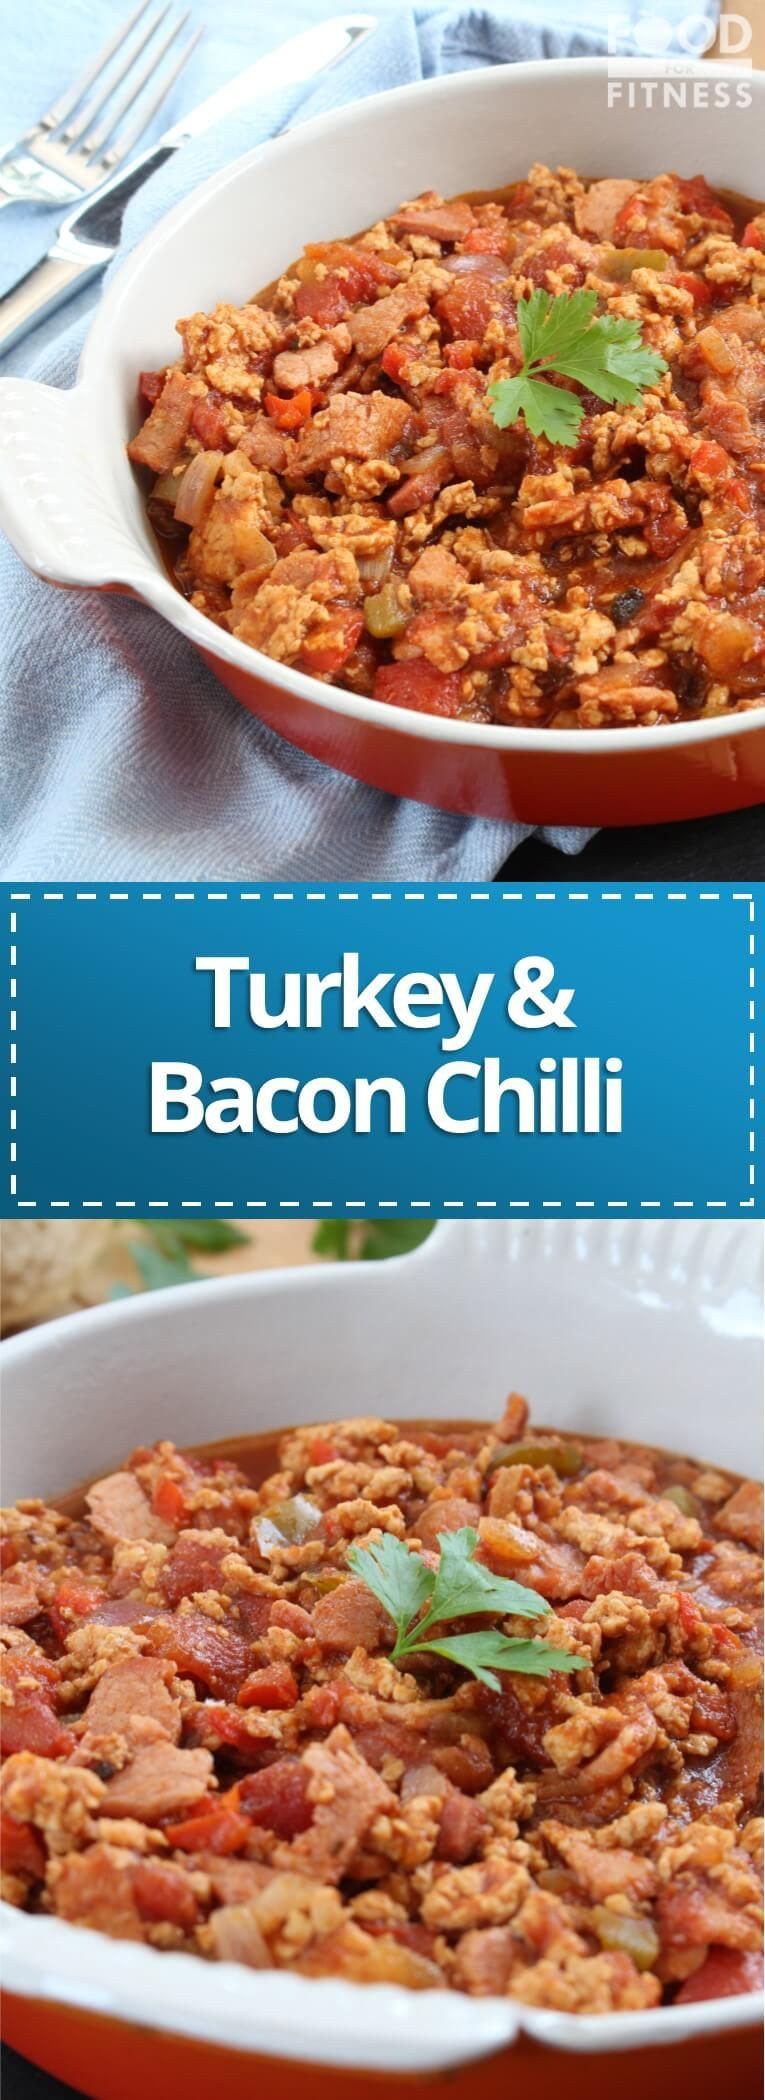 Bacon & Turkey Chilli | Recipe | Turkey chilli, Turkey ...